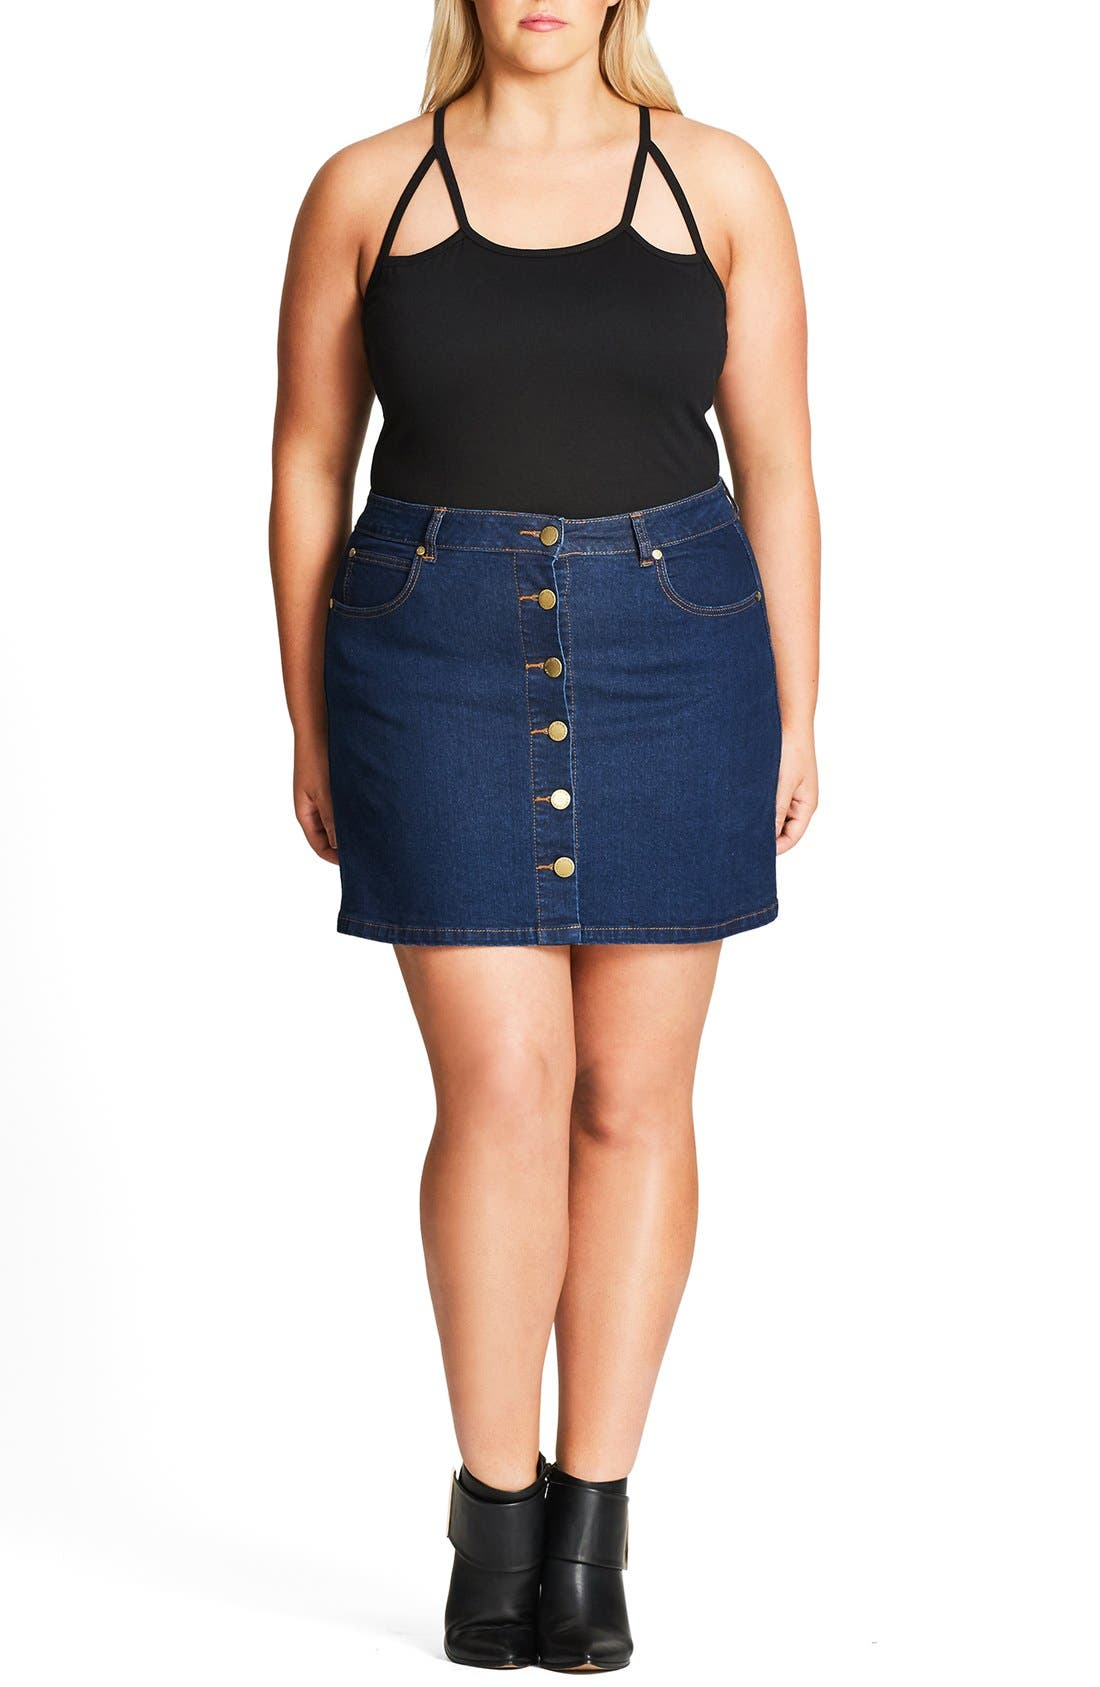 Jeans & Denim Leggings Plus Size Bottoms Work Pants & Skirts Wide-Leg Bottoms Intimates Best Selling Bottoms Featured. Vintage Style Bottoms Midi & Maxi Skirts Whether you chose a chic denim mini skirt or retro high-waisted jeans, our brilliant bottoms are perfect for any occasion. How will you wear your denim jeans? Read More. Read Less.